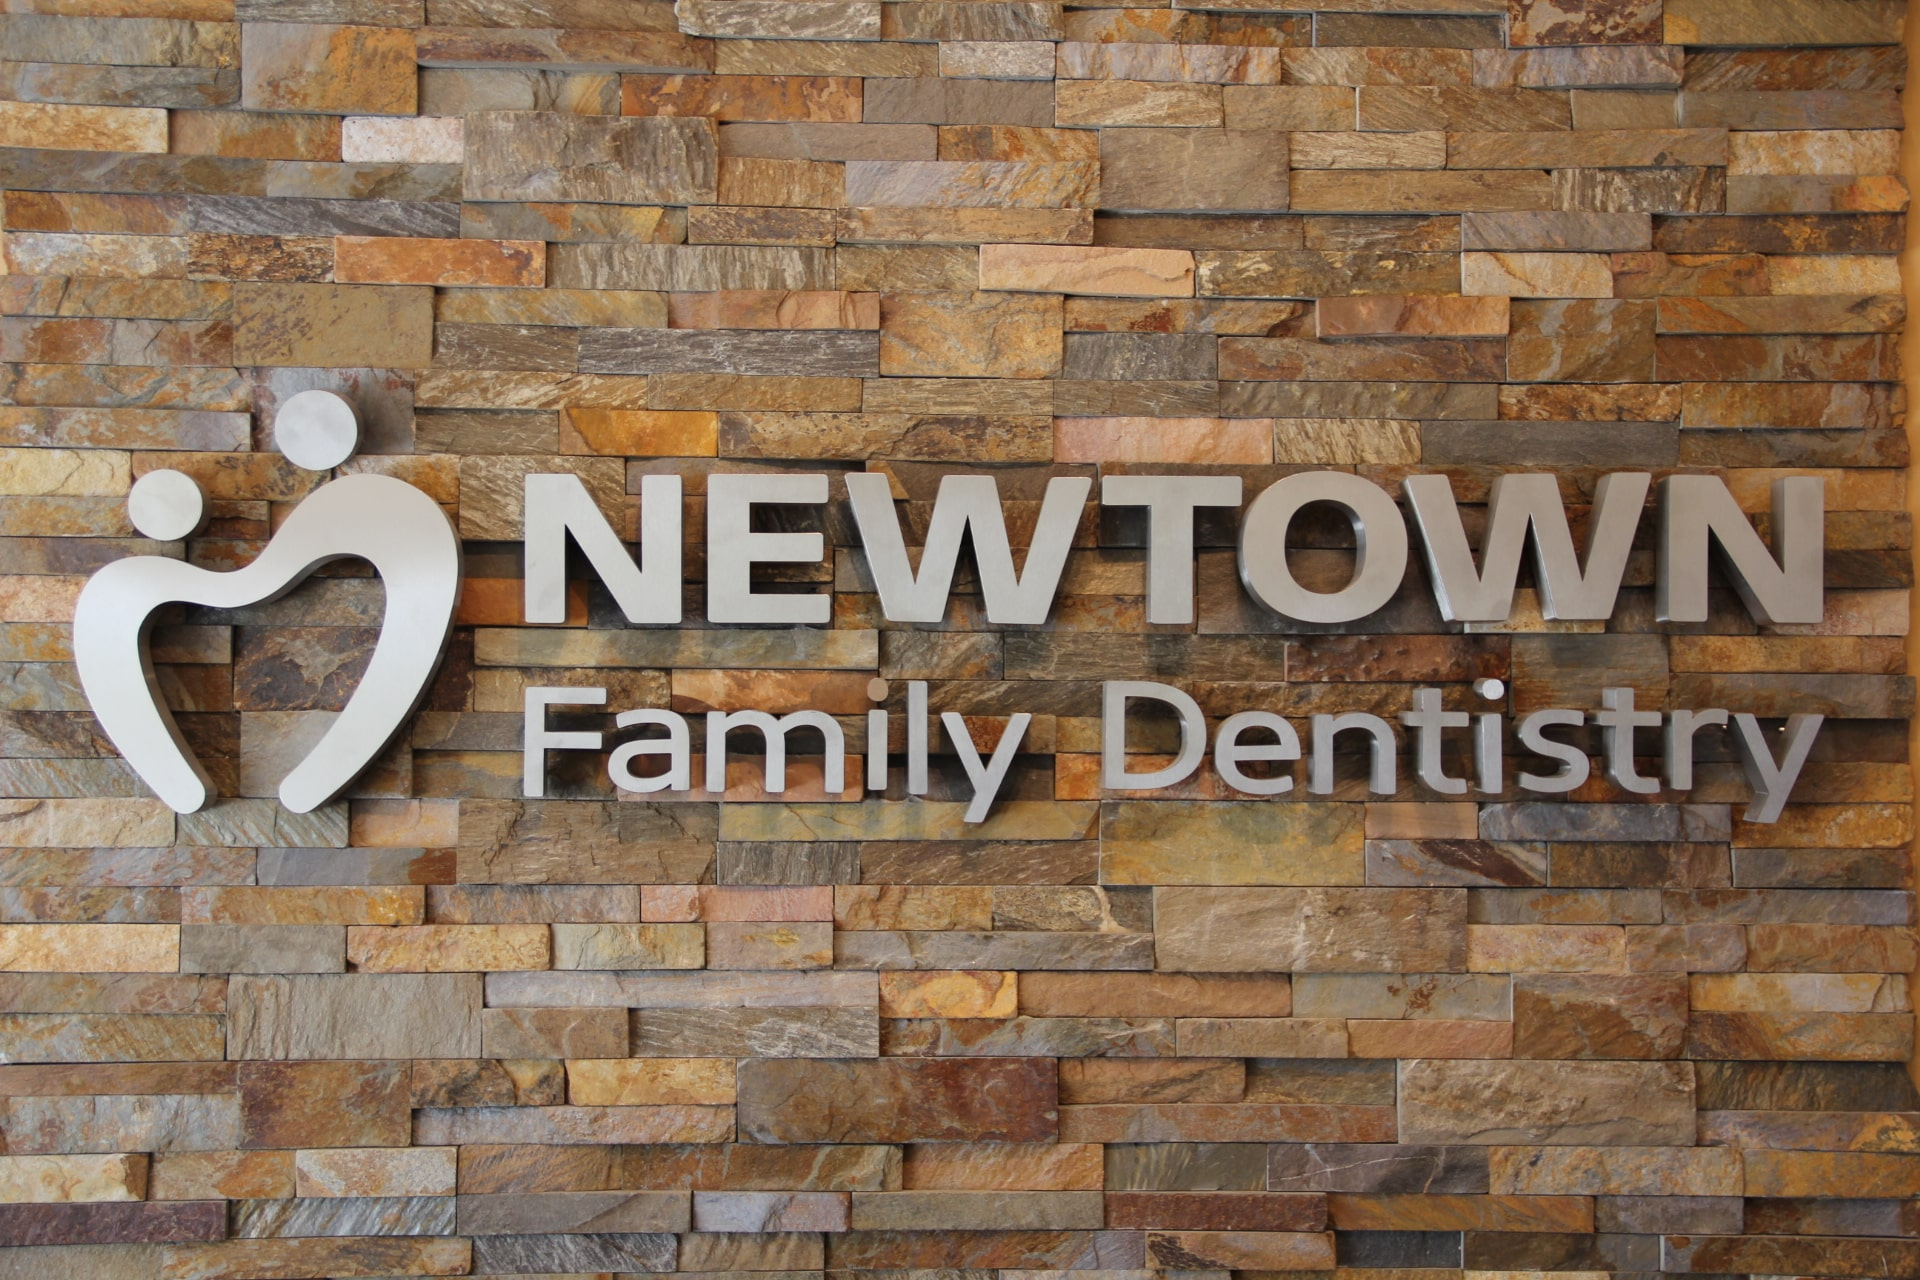 Norstone Ochre XL stacked stone feature wall with stainless steal signage in a Dentist Office in Delaware